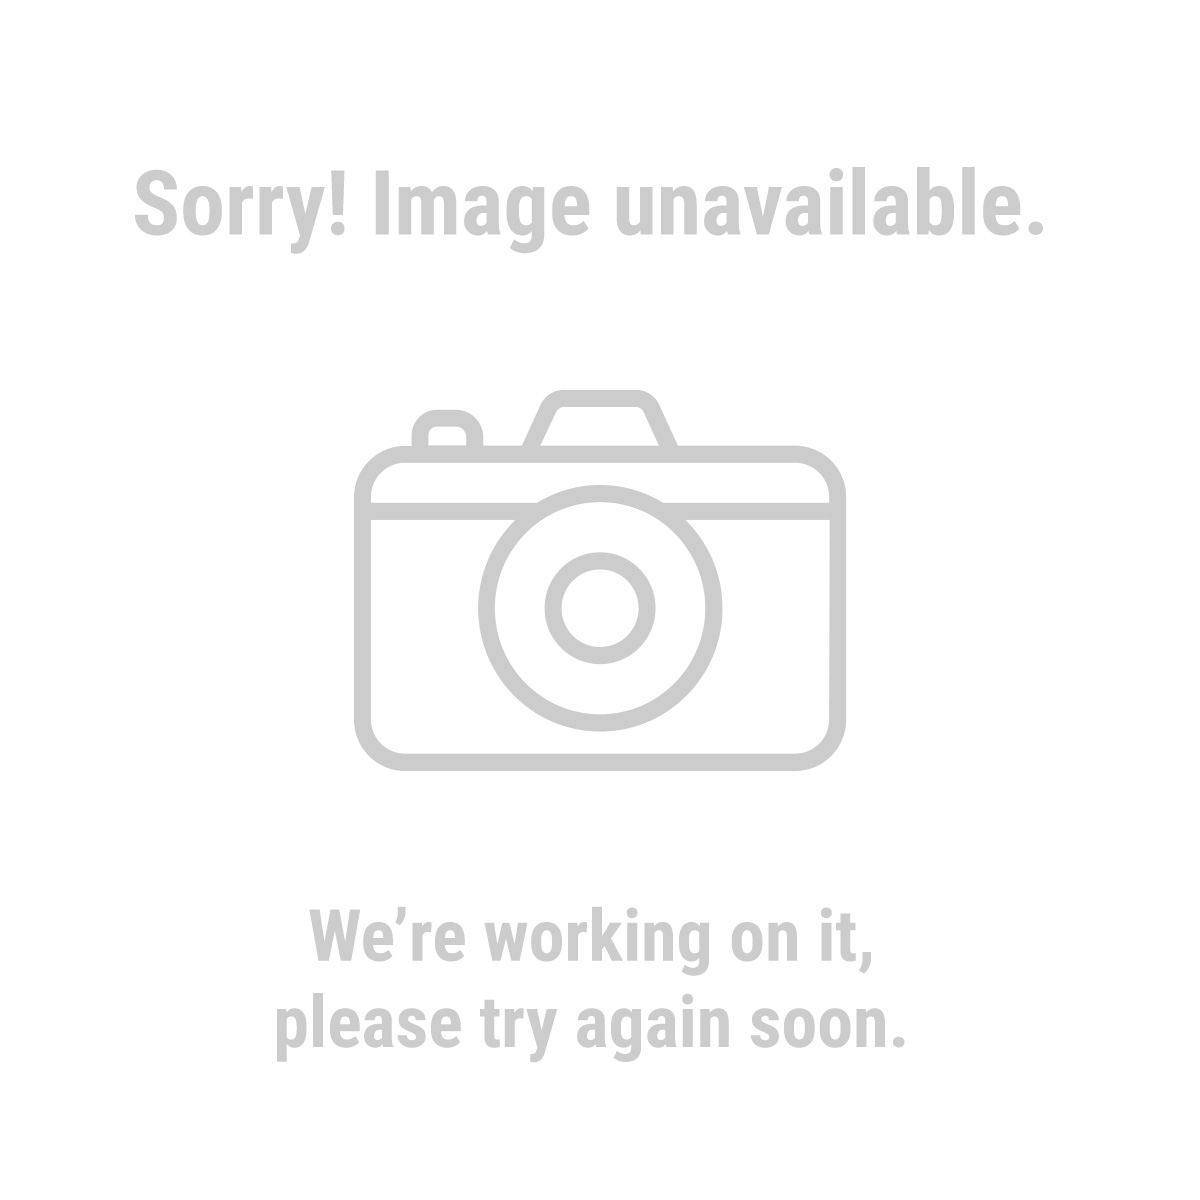 Vanguard 62908 100 ft. x 12 Gauge Multi-Outlet Extension Cord with Indicator Light